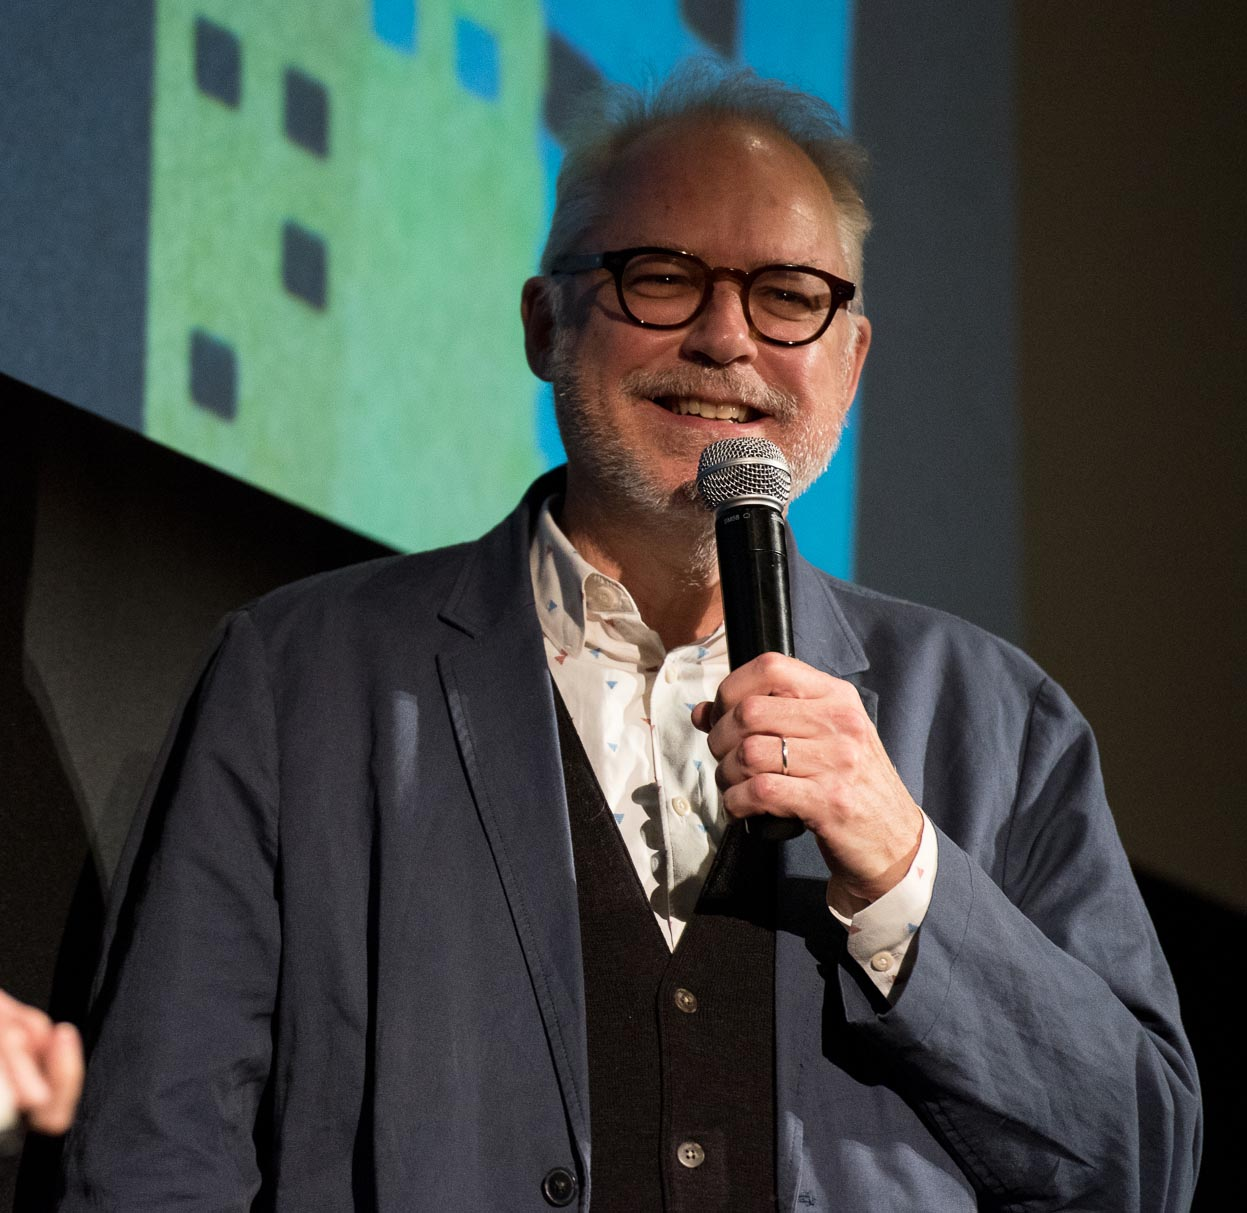 Photo from DOC NYC screening, by Carlos Sanfer